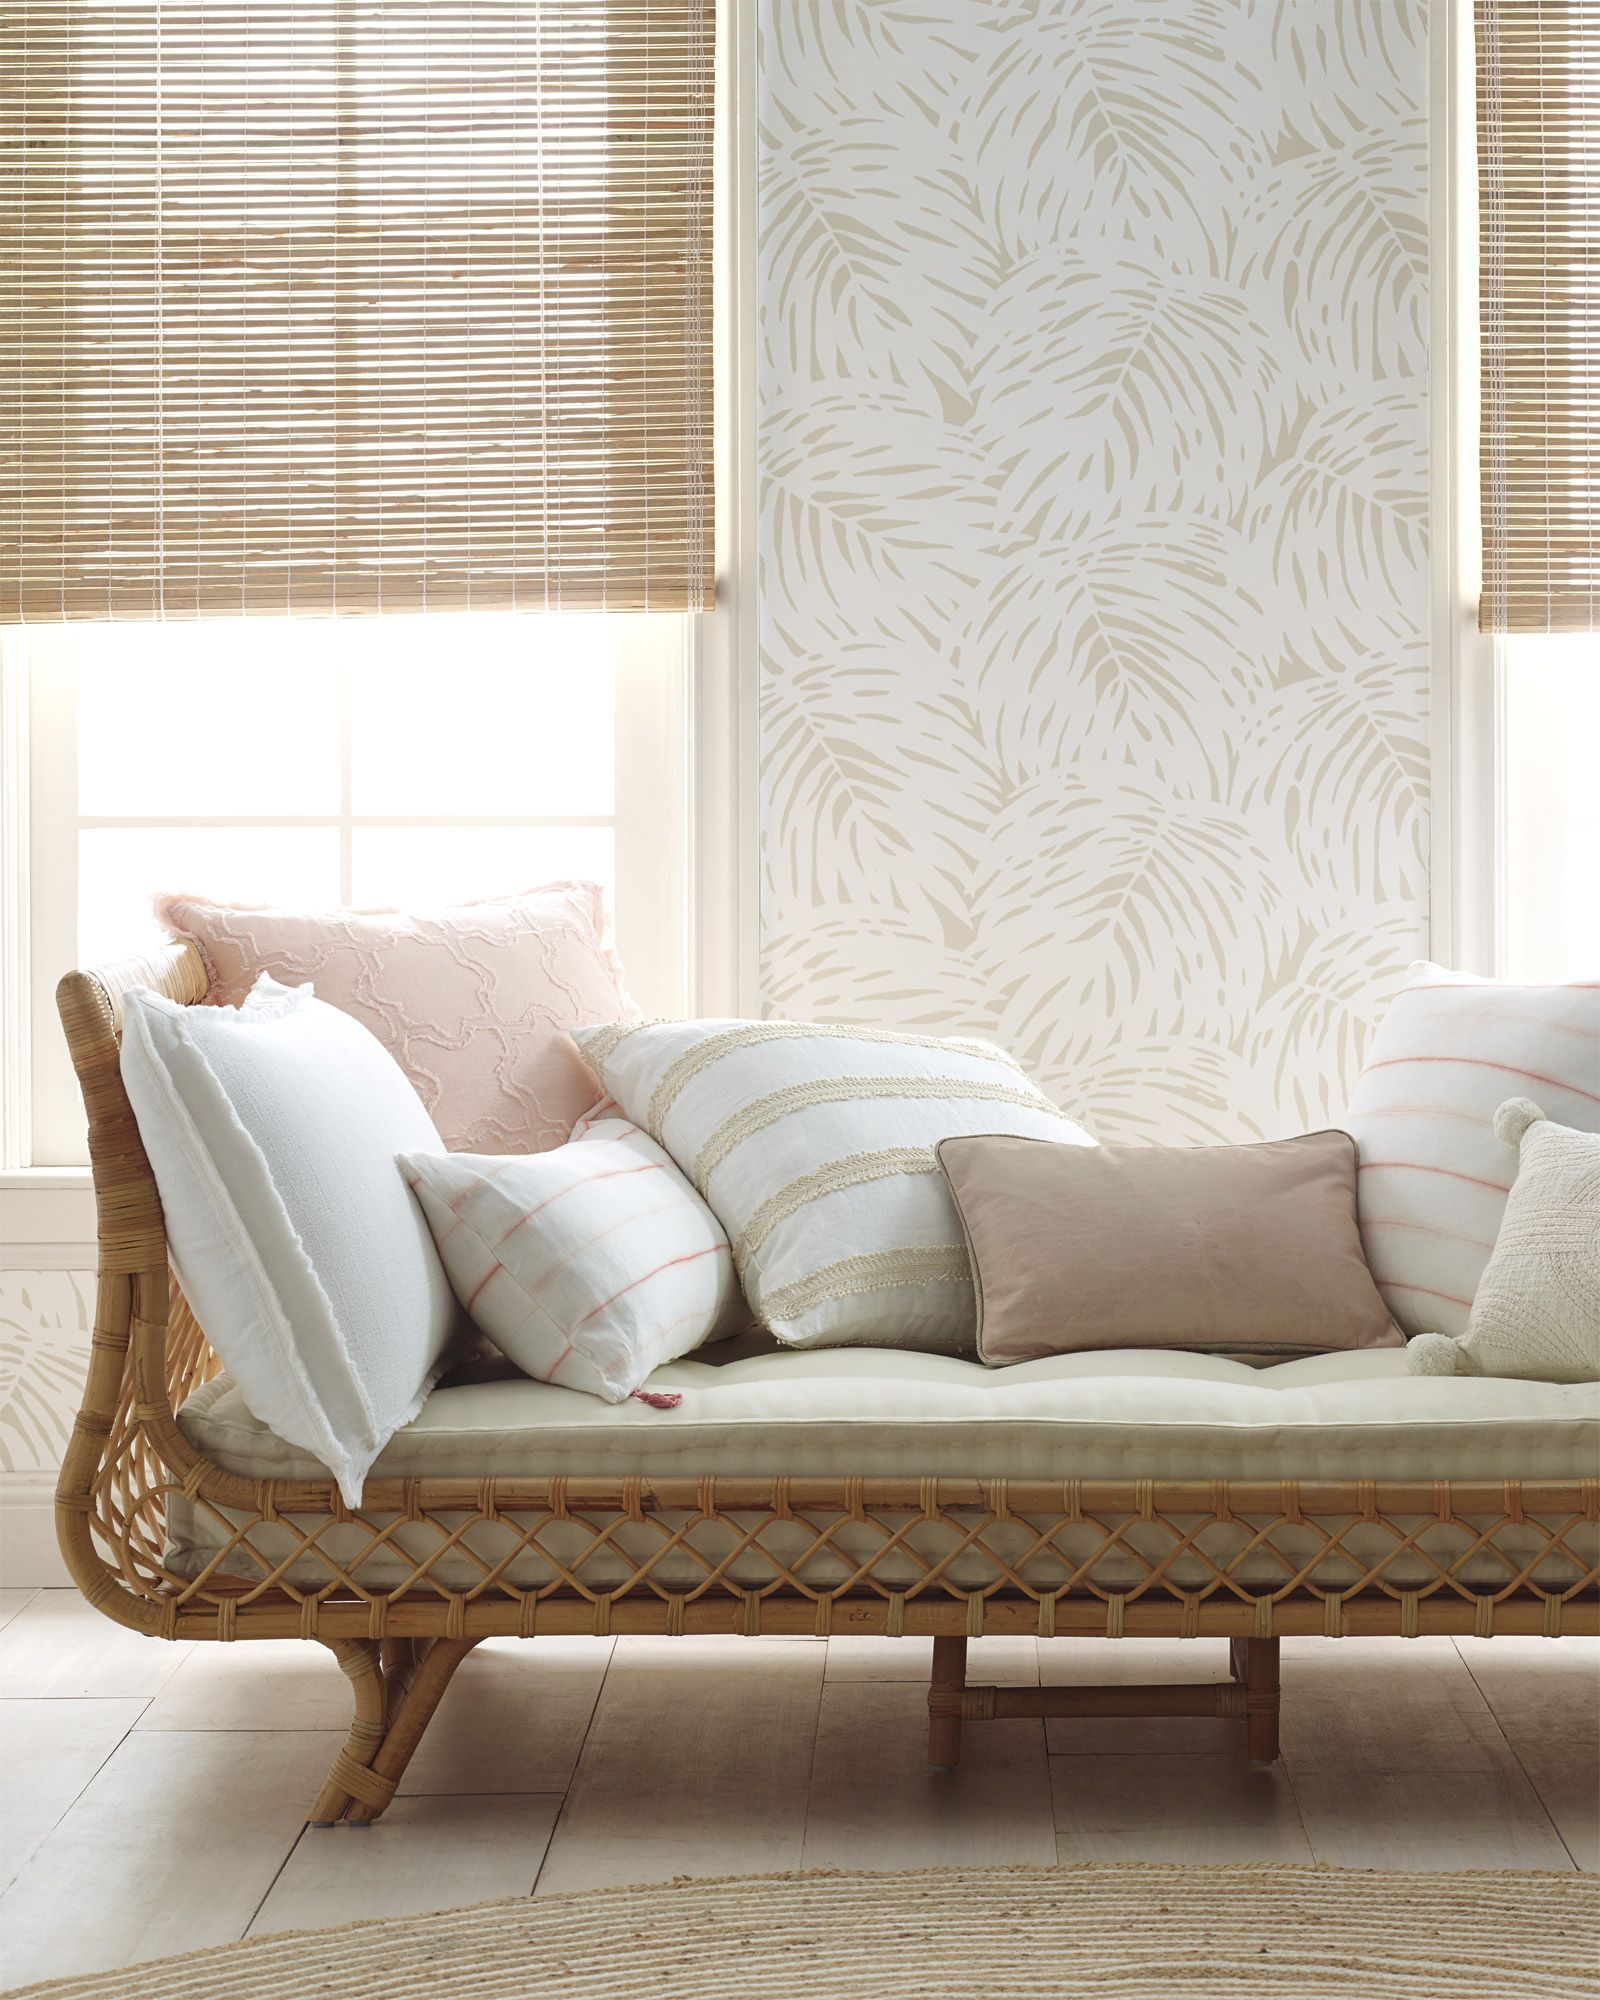 Palm Wallpaper Palm wallpaper, Daybed in living room